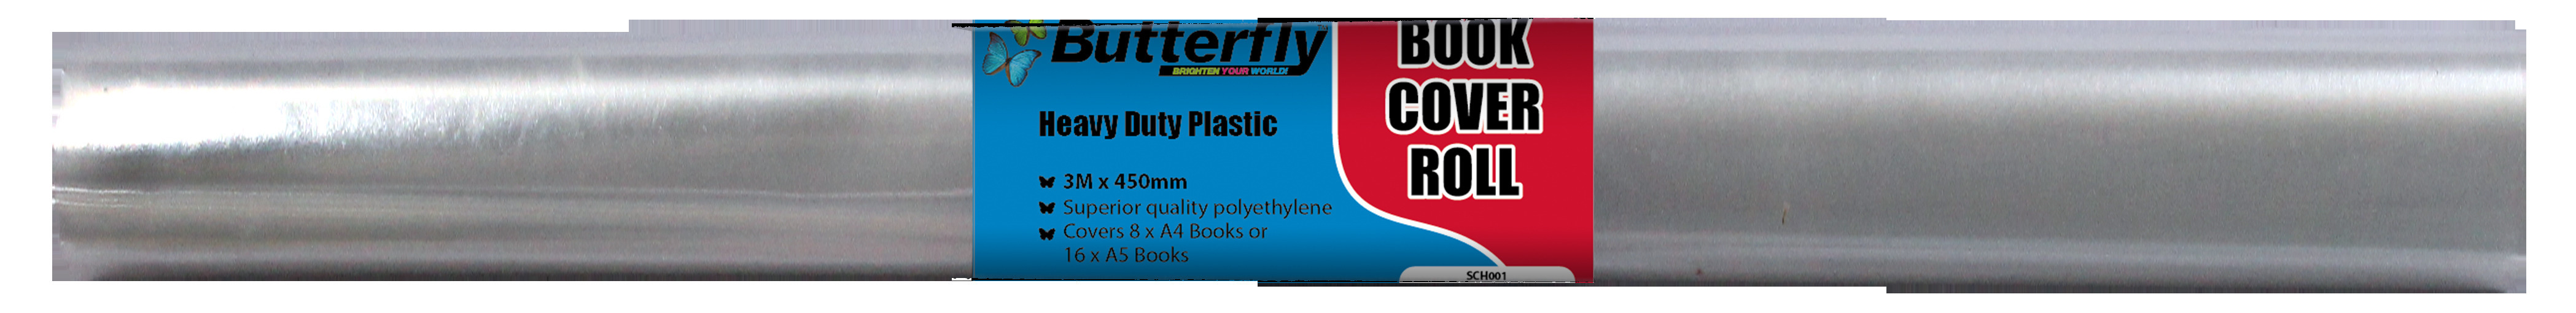 Book Cover Roll - Heavy Duty 80 Micron (3m x 480mm)